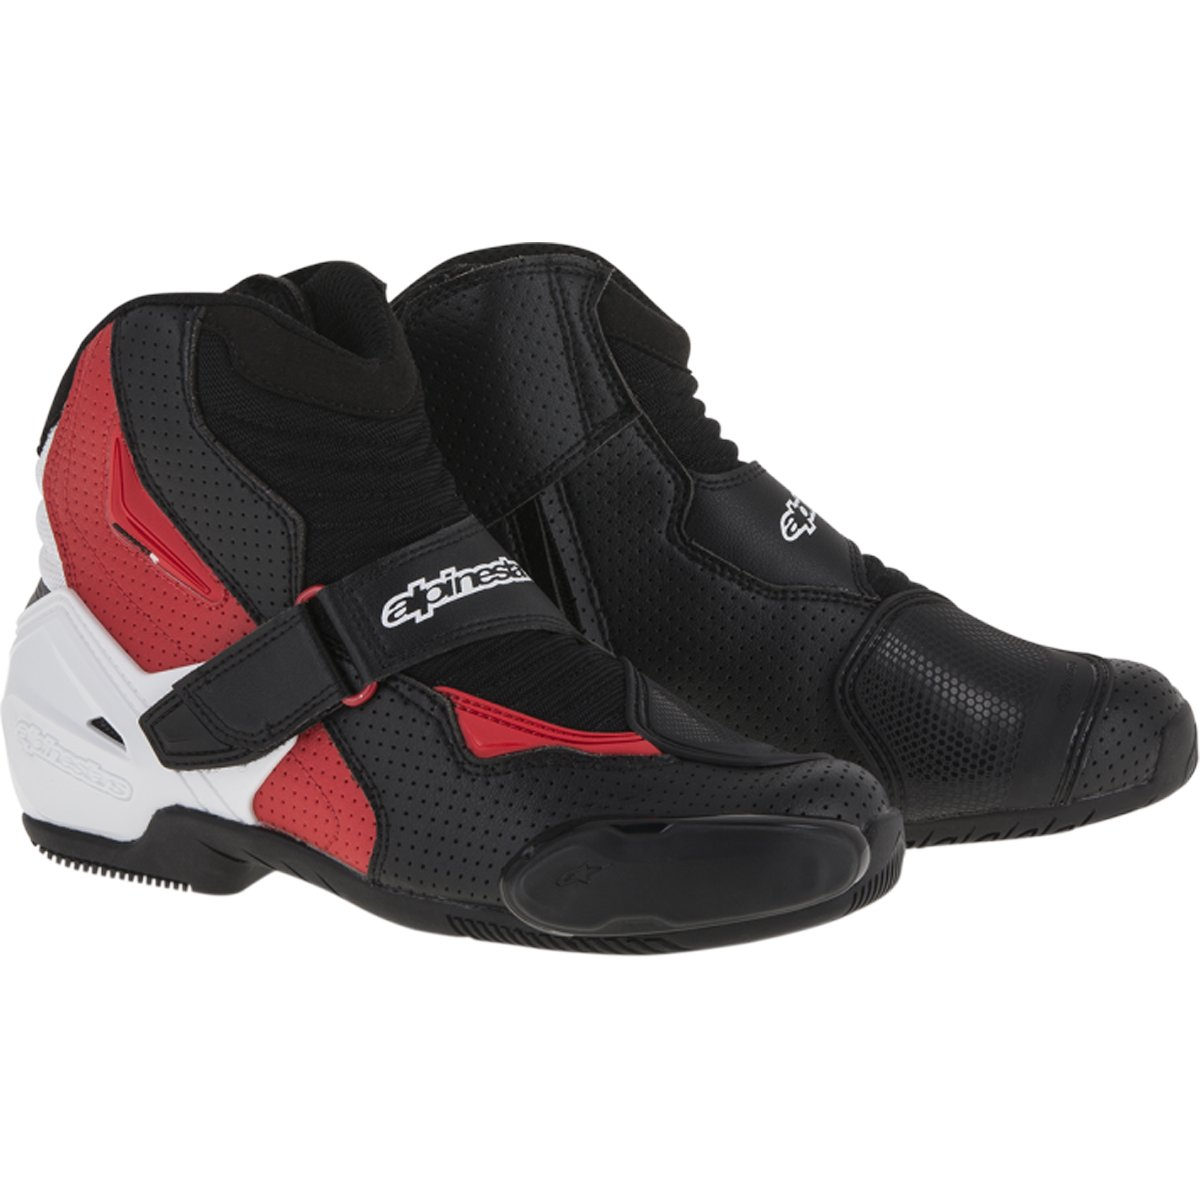 Alpinestars SMX-1 R Vented Boots (41) (Black/White/RED) by Alpinestars